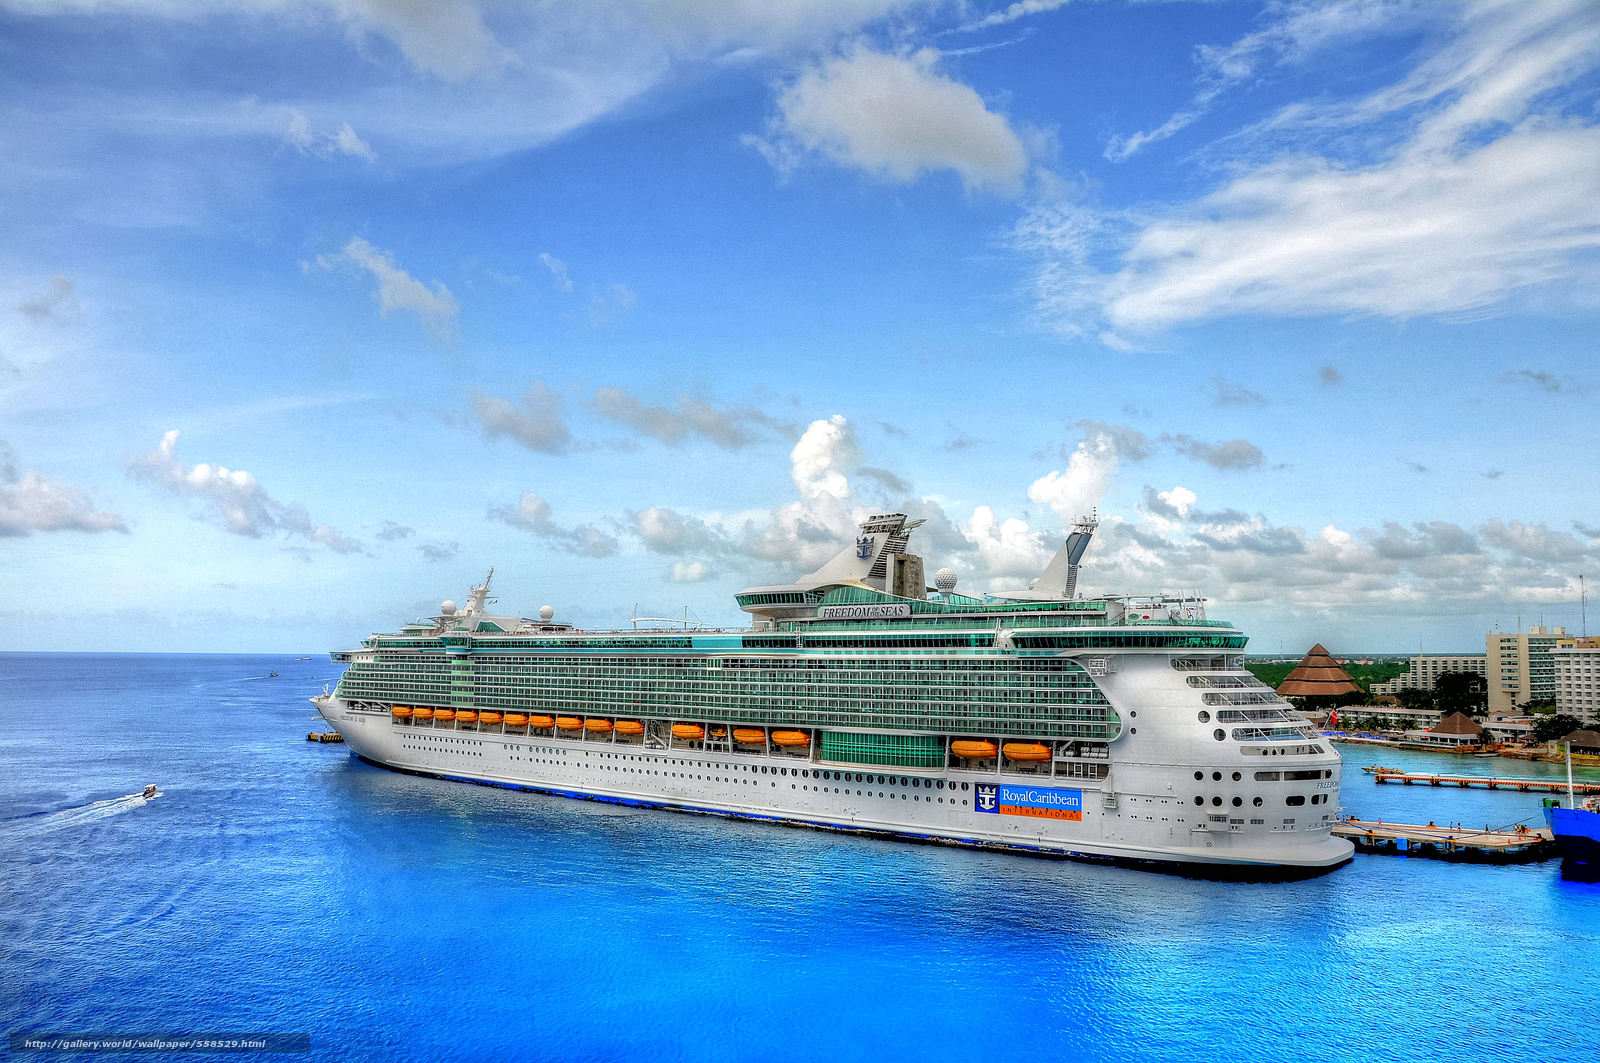 Download wallpaper sea ship cruise ship desktop wallpaper in 1600x1063